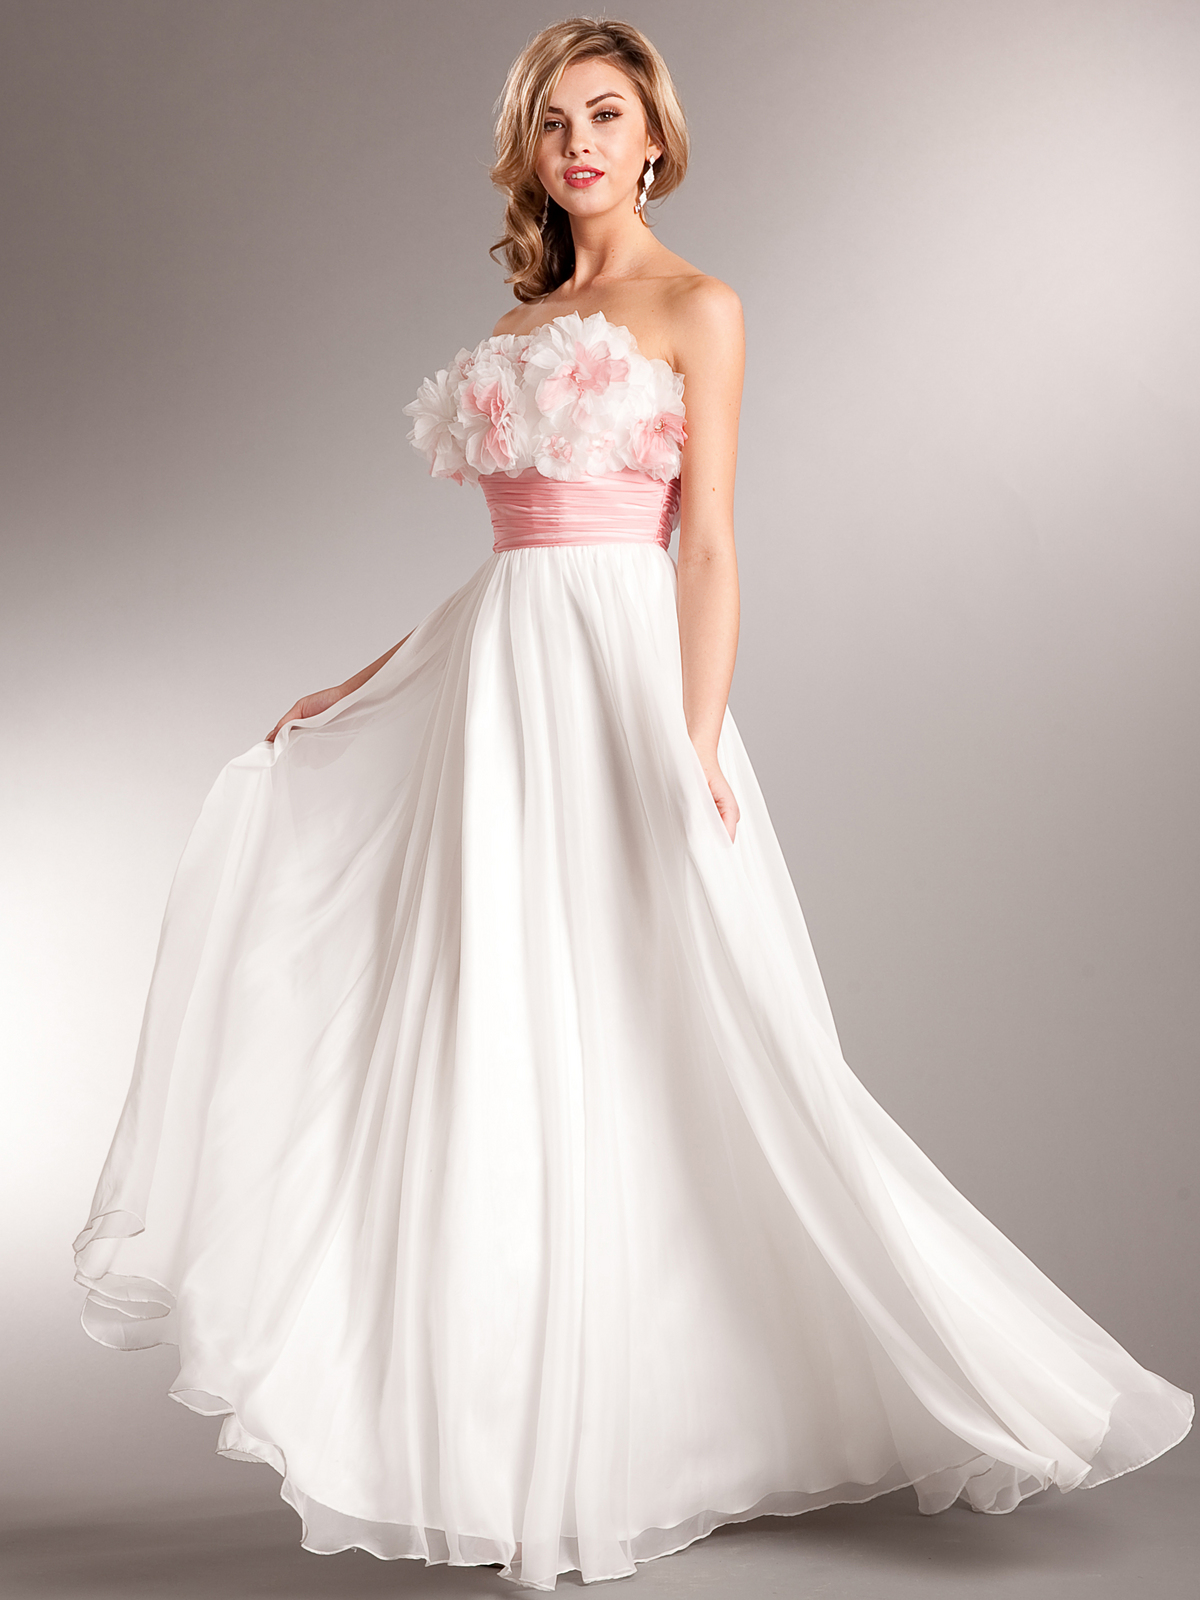 04b6d6308c AC612 Debutant Debut Special Occasion Dress - Off White, Front View Medium  ...